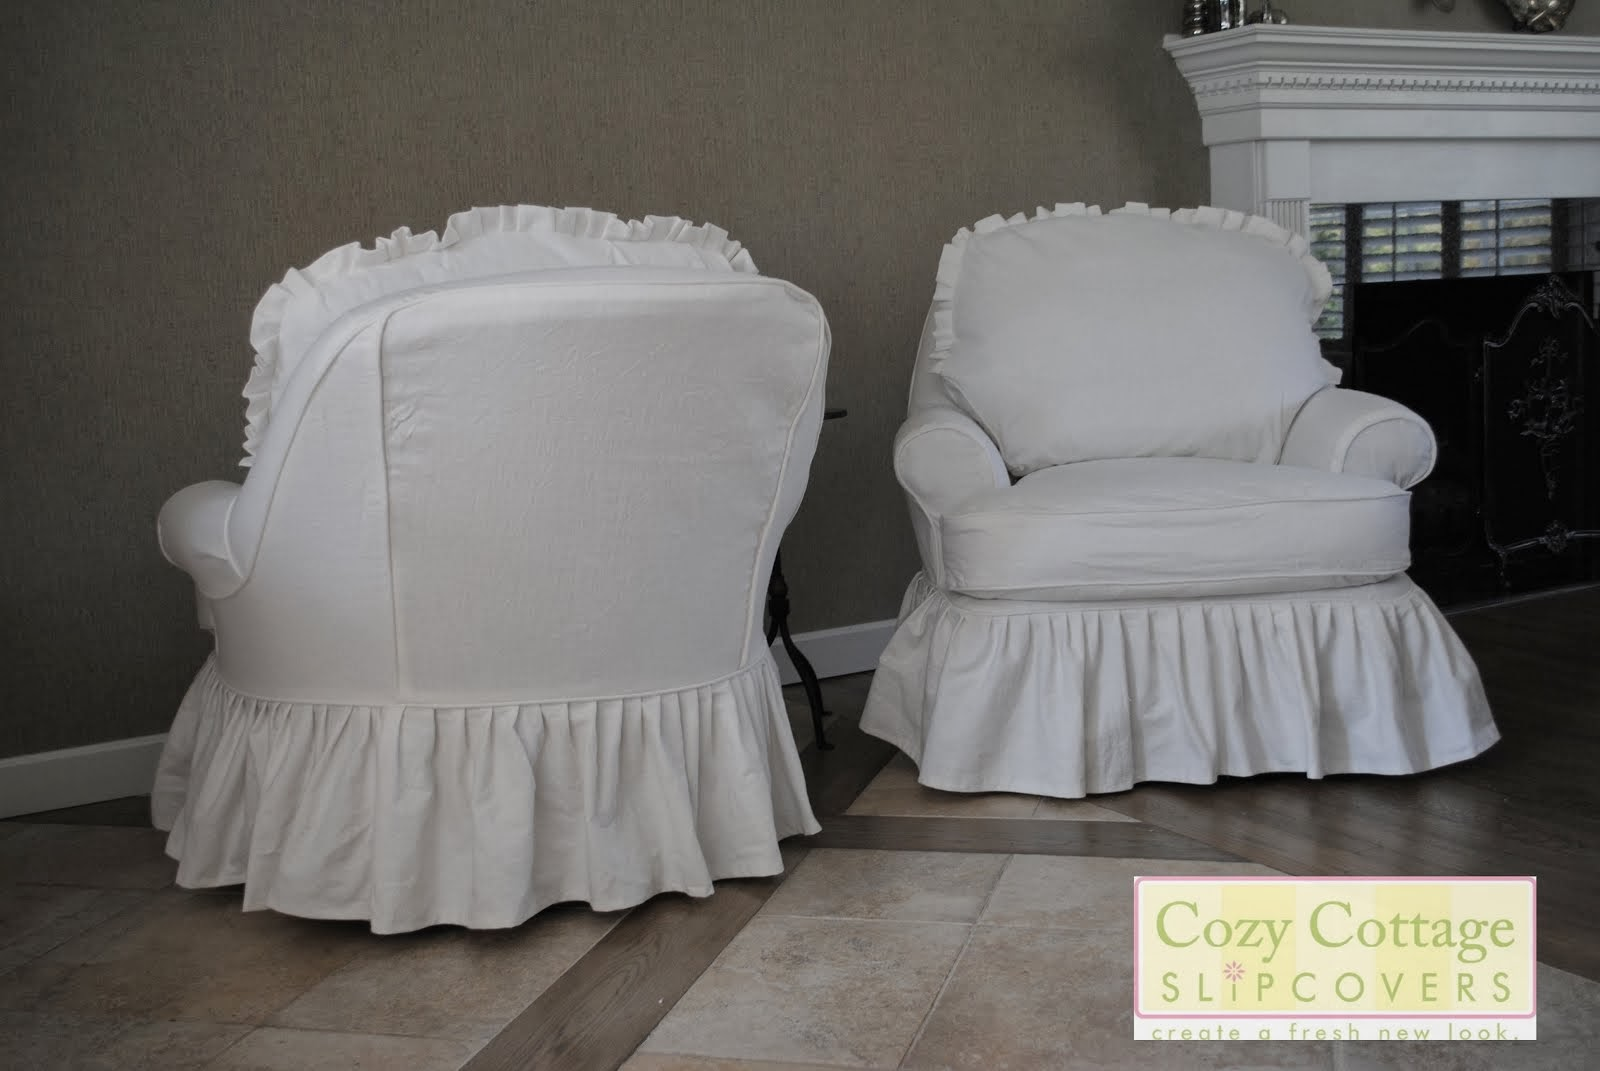 Cozy cottage slipcovers new office chair slipcovers -